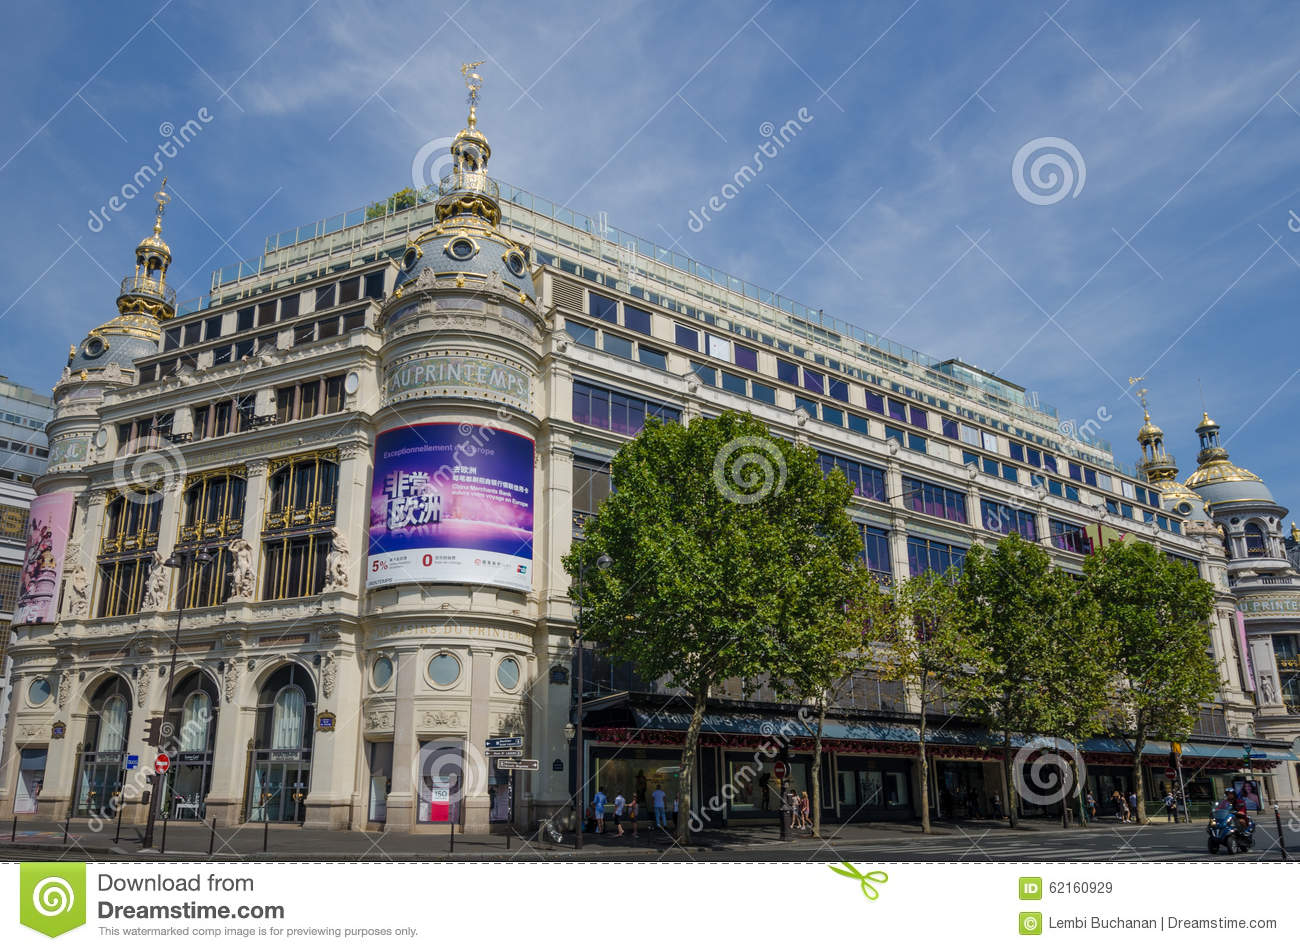 flagship printemps department store in paris editorial stock image image of business retail. Black Bedroom Furniture Sets. Home Design Ideas